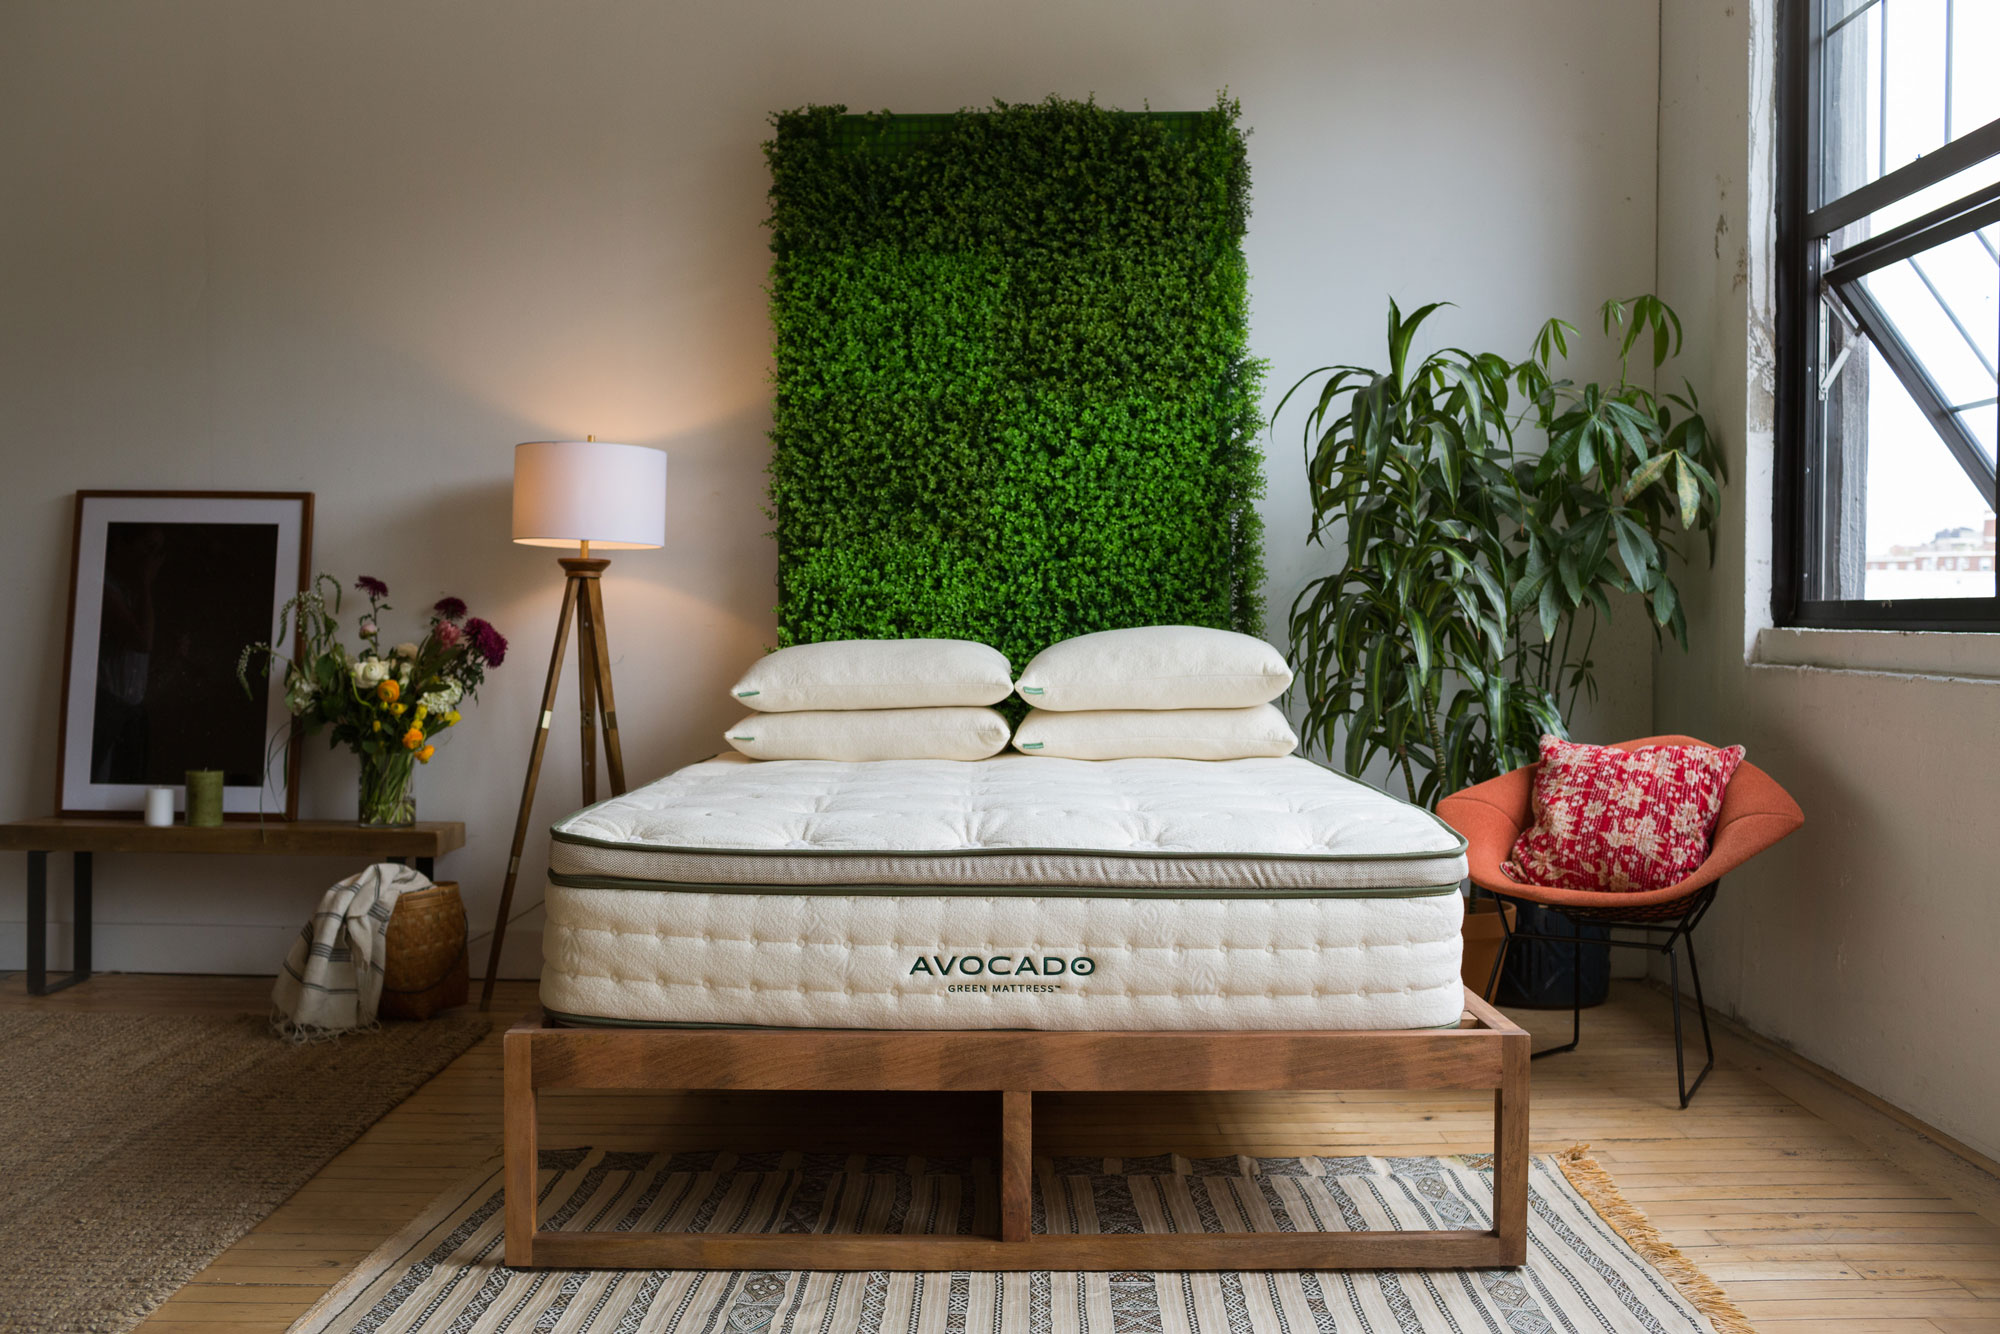 How The Mattress You Select Can Impact Your General Health